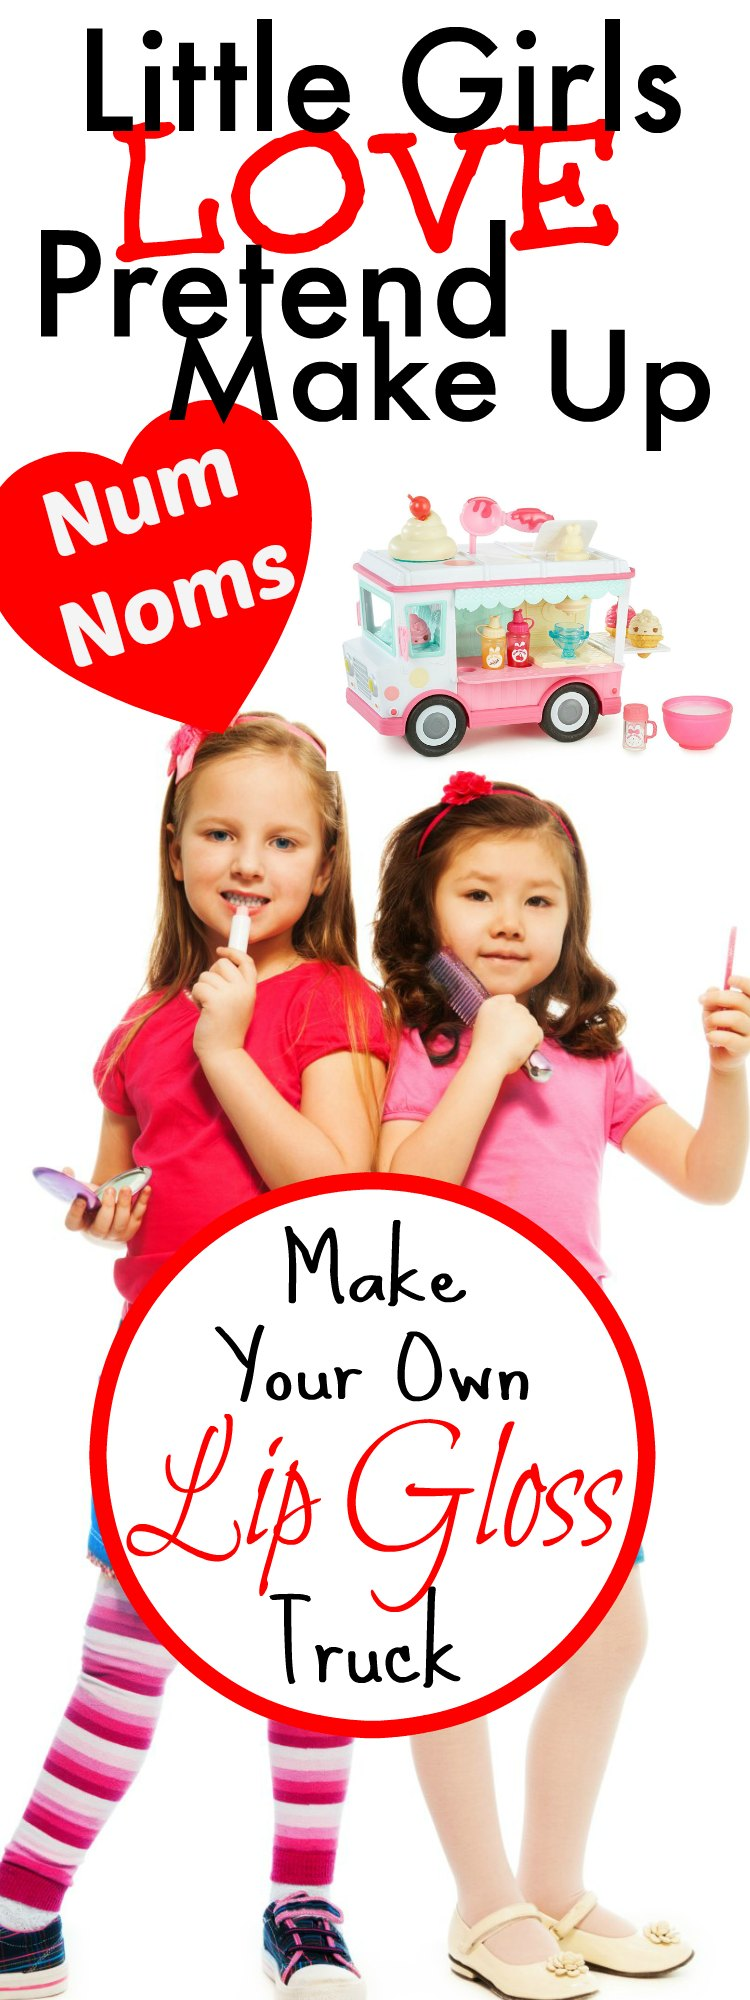 Little Girls Love Pretend Make Up Num Noms Make Your Own Lip Gloss Truck